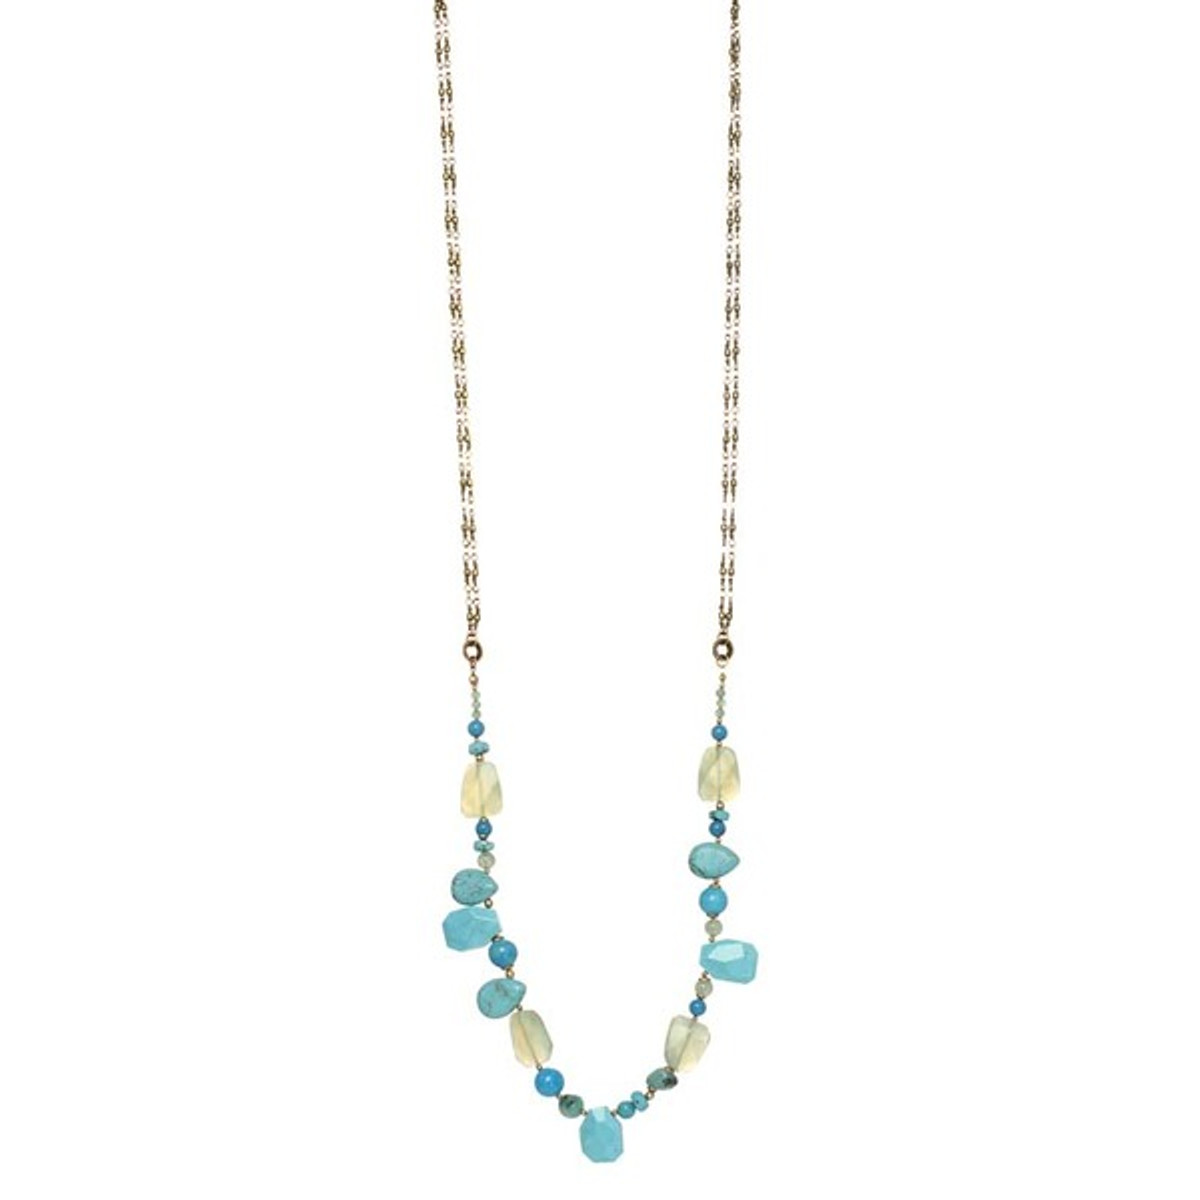 Turquoise Michal Golan Nile Necklace